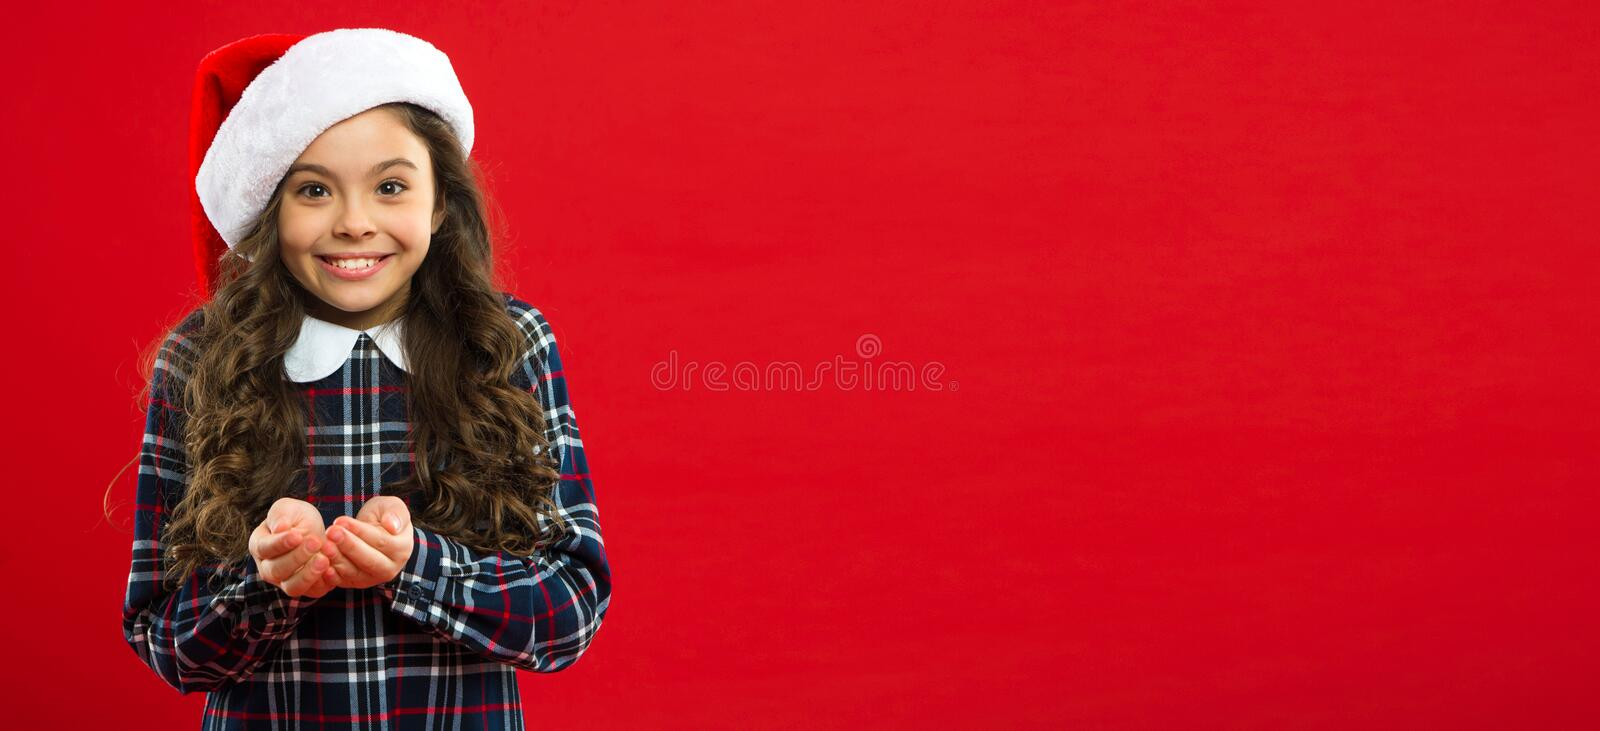 Present for Xmas. Childhood. New year party. Santa claus kid. Christmas shopping. Happy winter holidays. Small girl. Little girl child in santa red hat royalty free stock photo